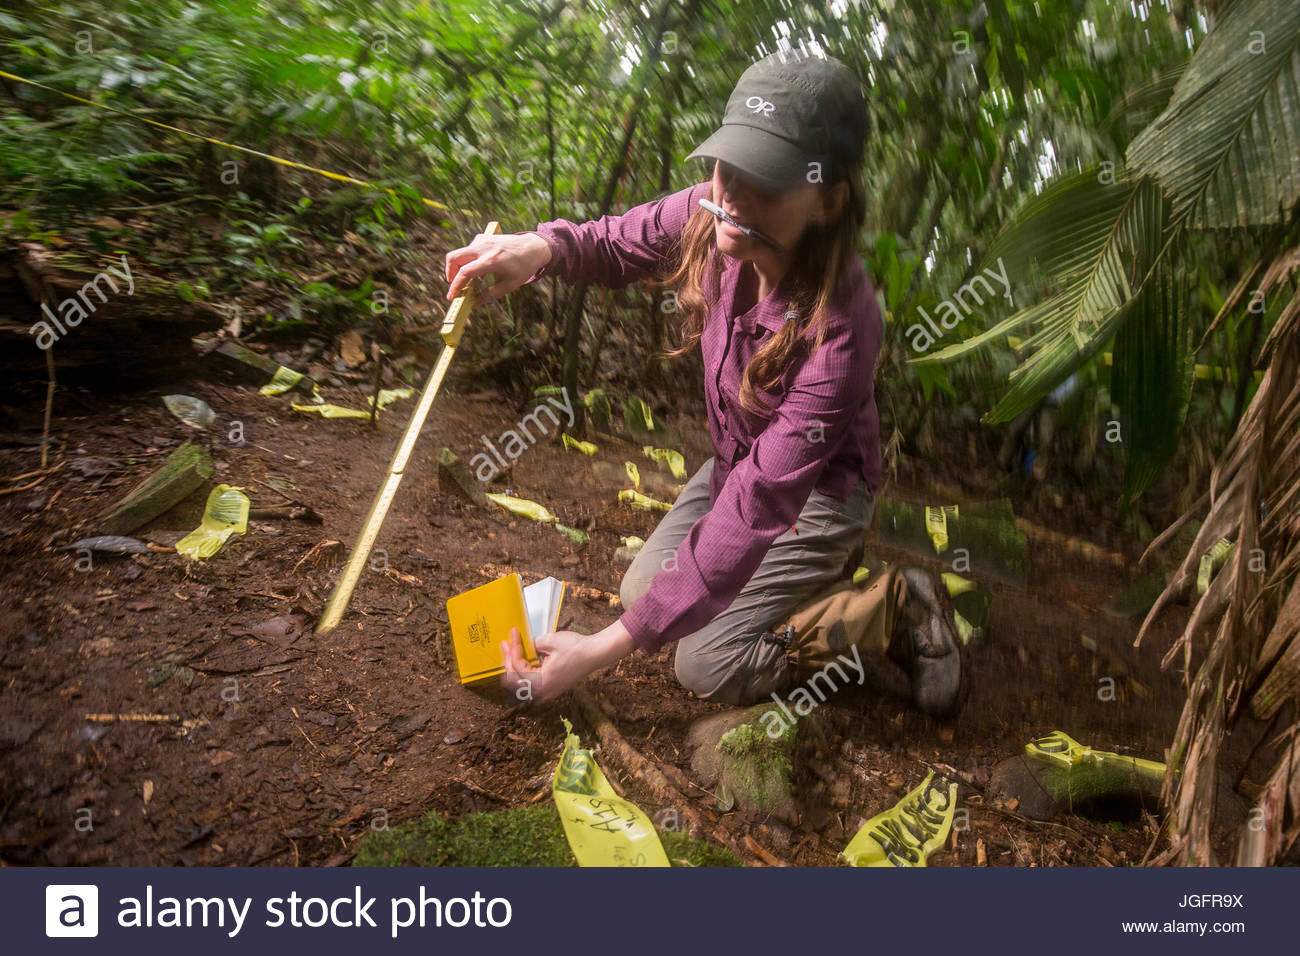 An anthropology grad student documents a cache of more than 50 artifacts discovered in the jungle. - Stock Image